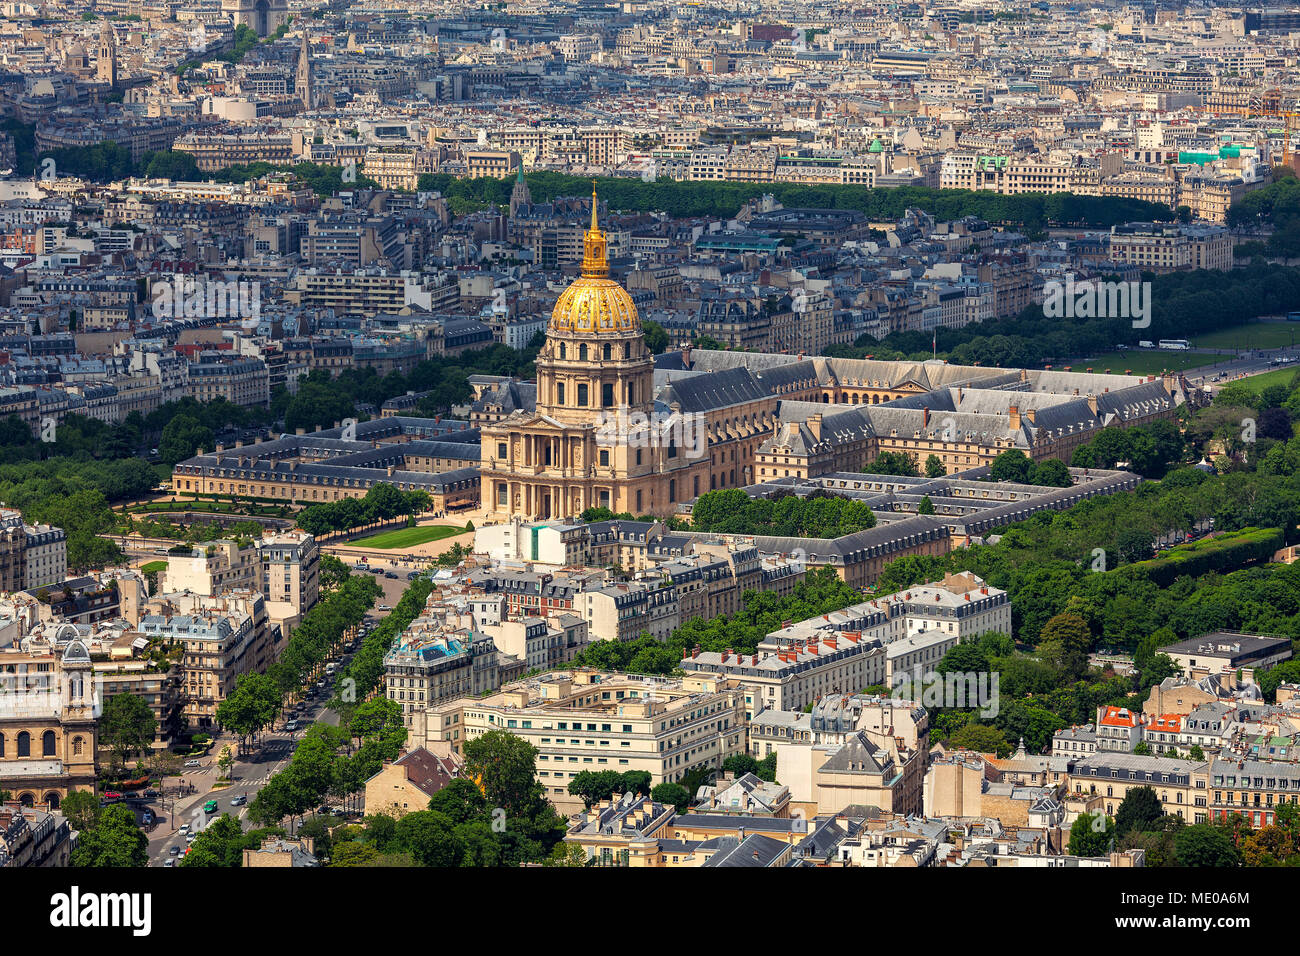 Aerial view of famous Les Invalides and typical Parisian buildings as seen from Montparnasse Tower in Paris, France. - Stock Image